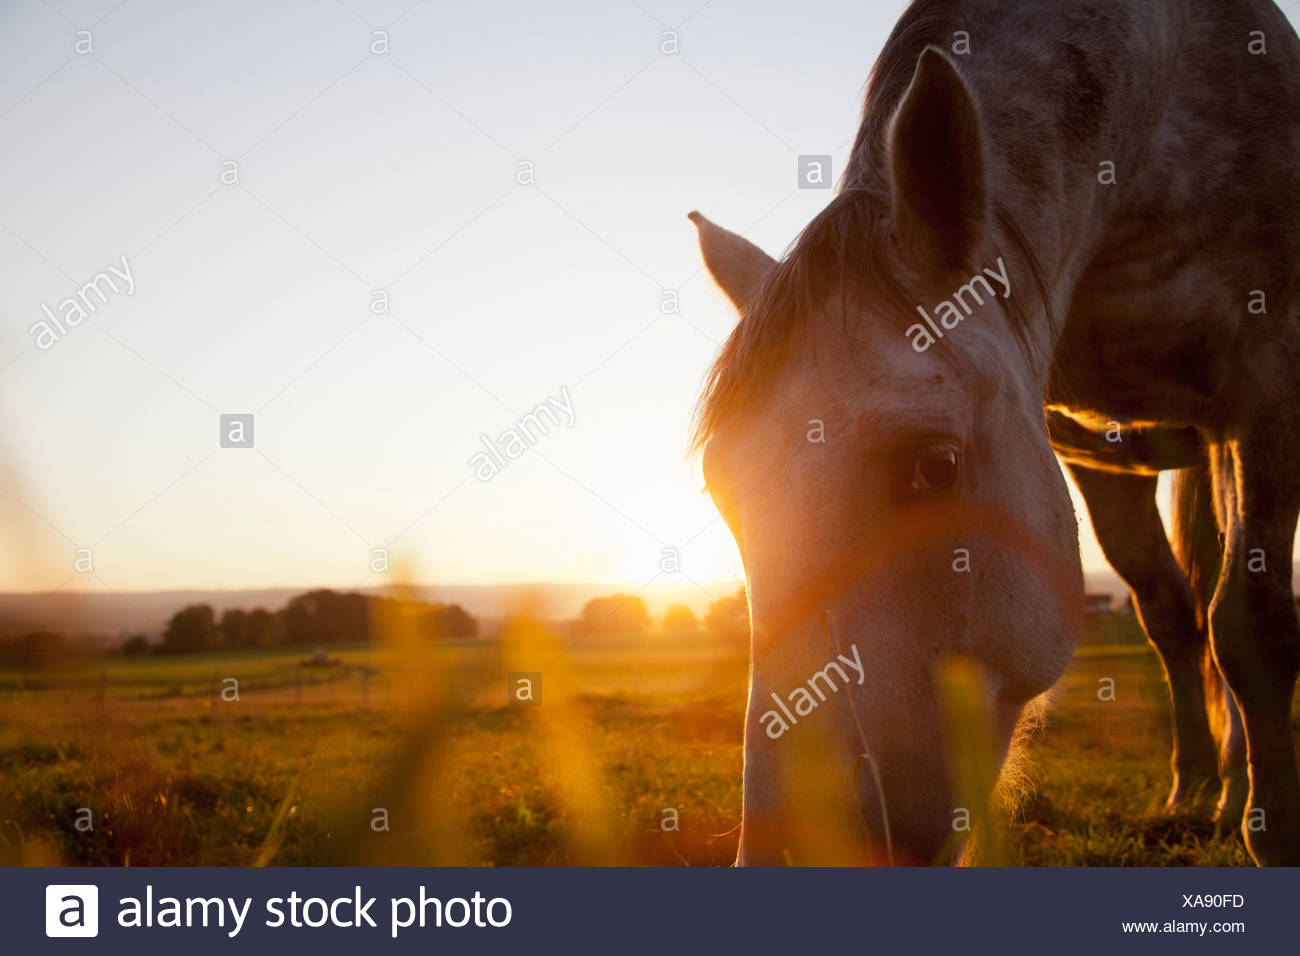 Hose grazing in rural field - Stock Image